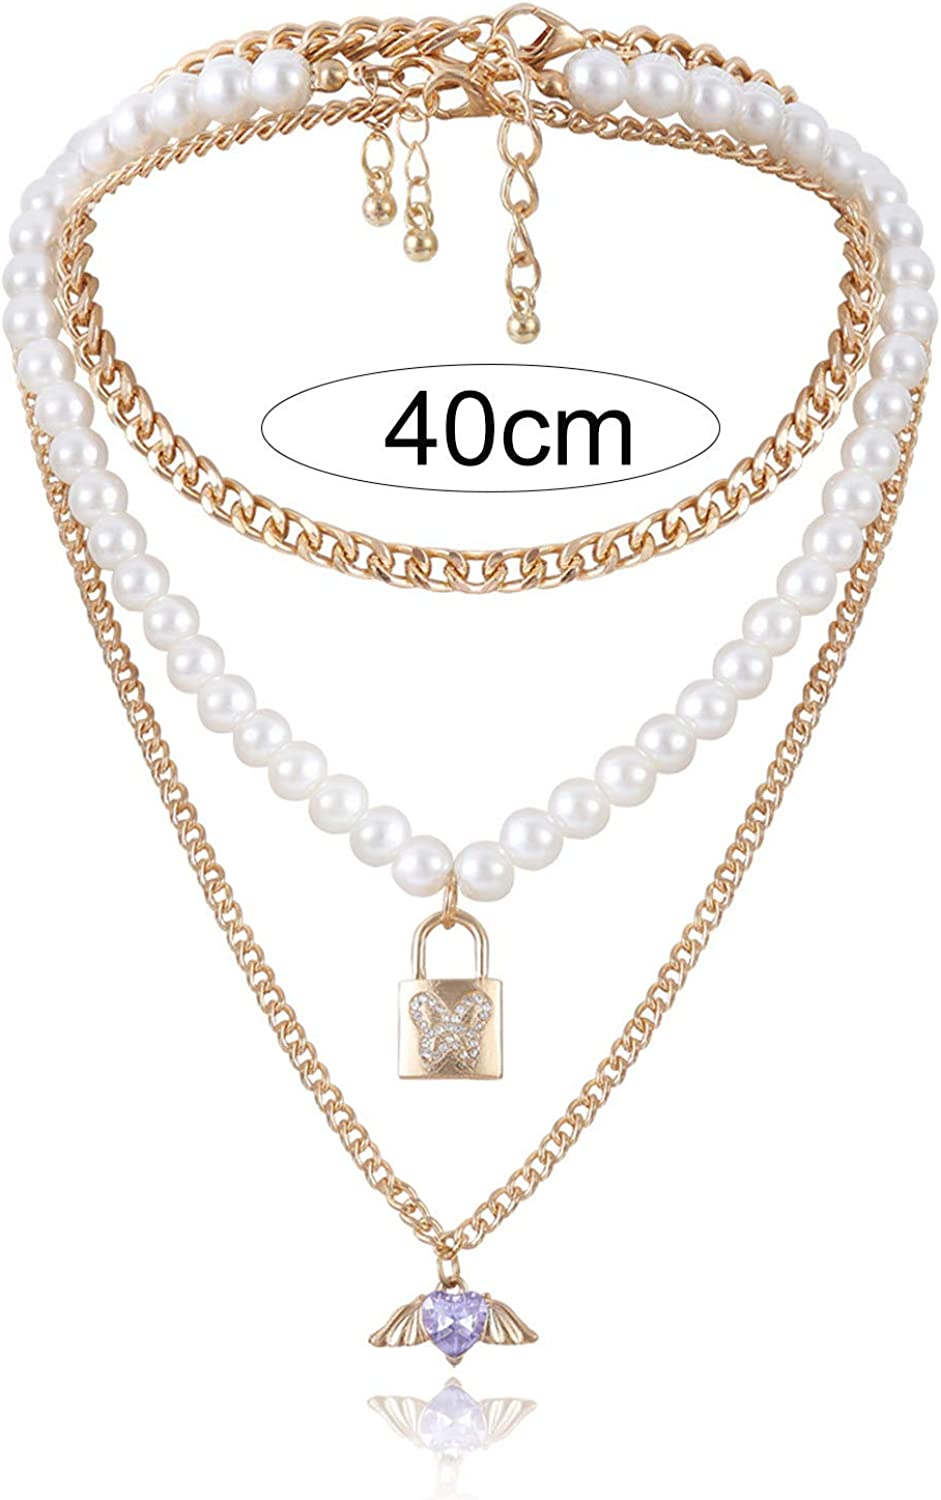 Necklace Butterfly Lock Temperament Wing Faux Pearls Multilayer Chain for Dating for Women Girls Teens